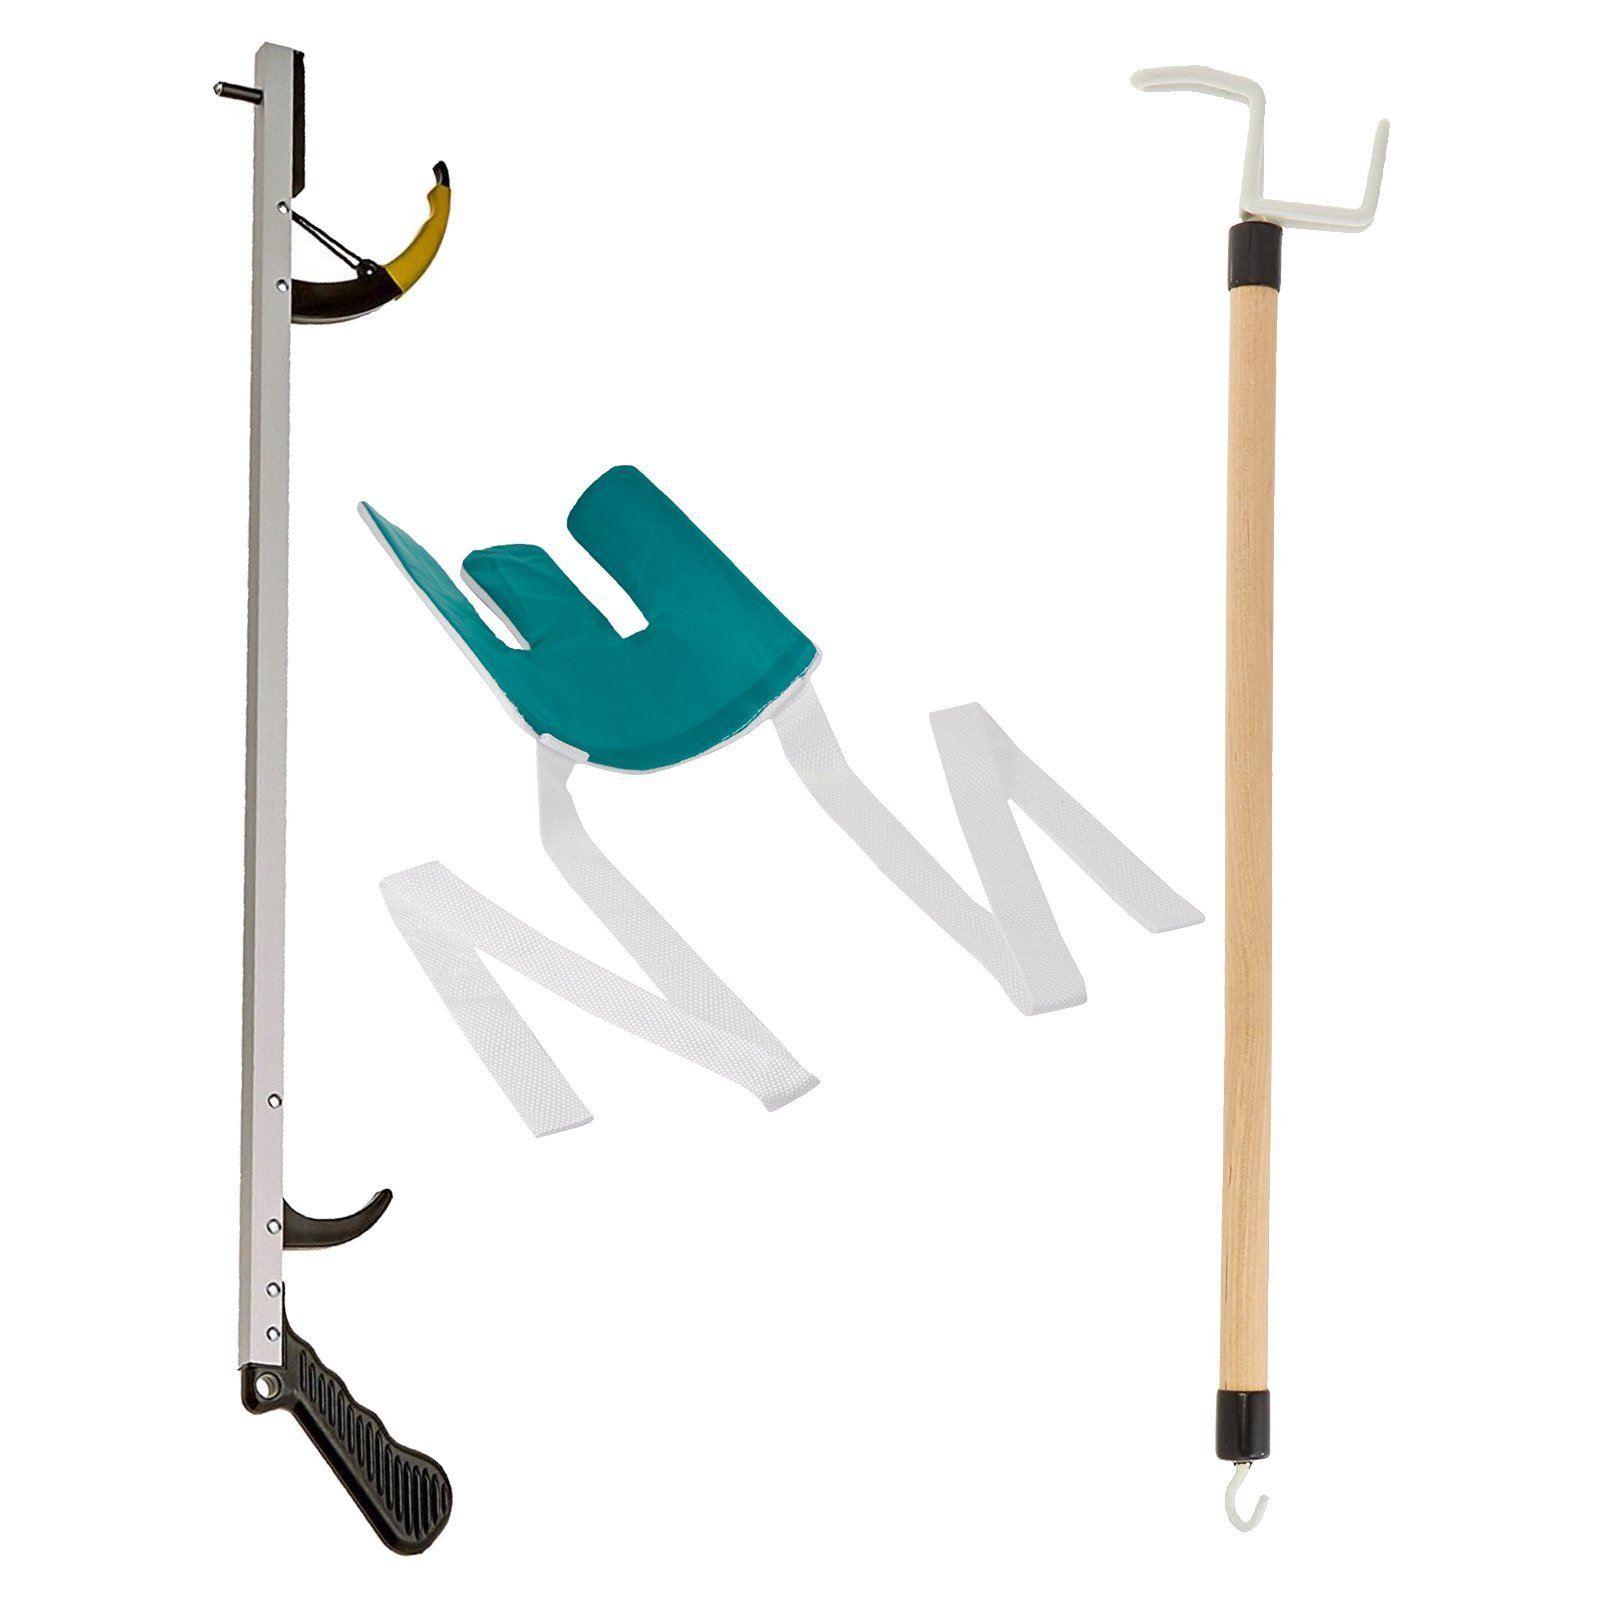 Sammons Preston Assistive Device Kit 4, Includes 26'' SPR Reacher, Flexible Sock Aid & 26'' Dressing Stick, Adaptive Dressing & Independent Daily Living Aid for Those with Limited Reaching Ability